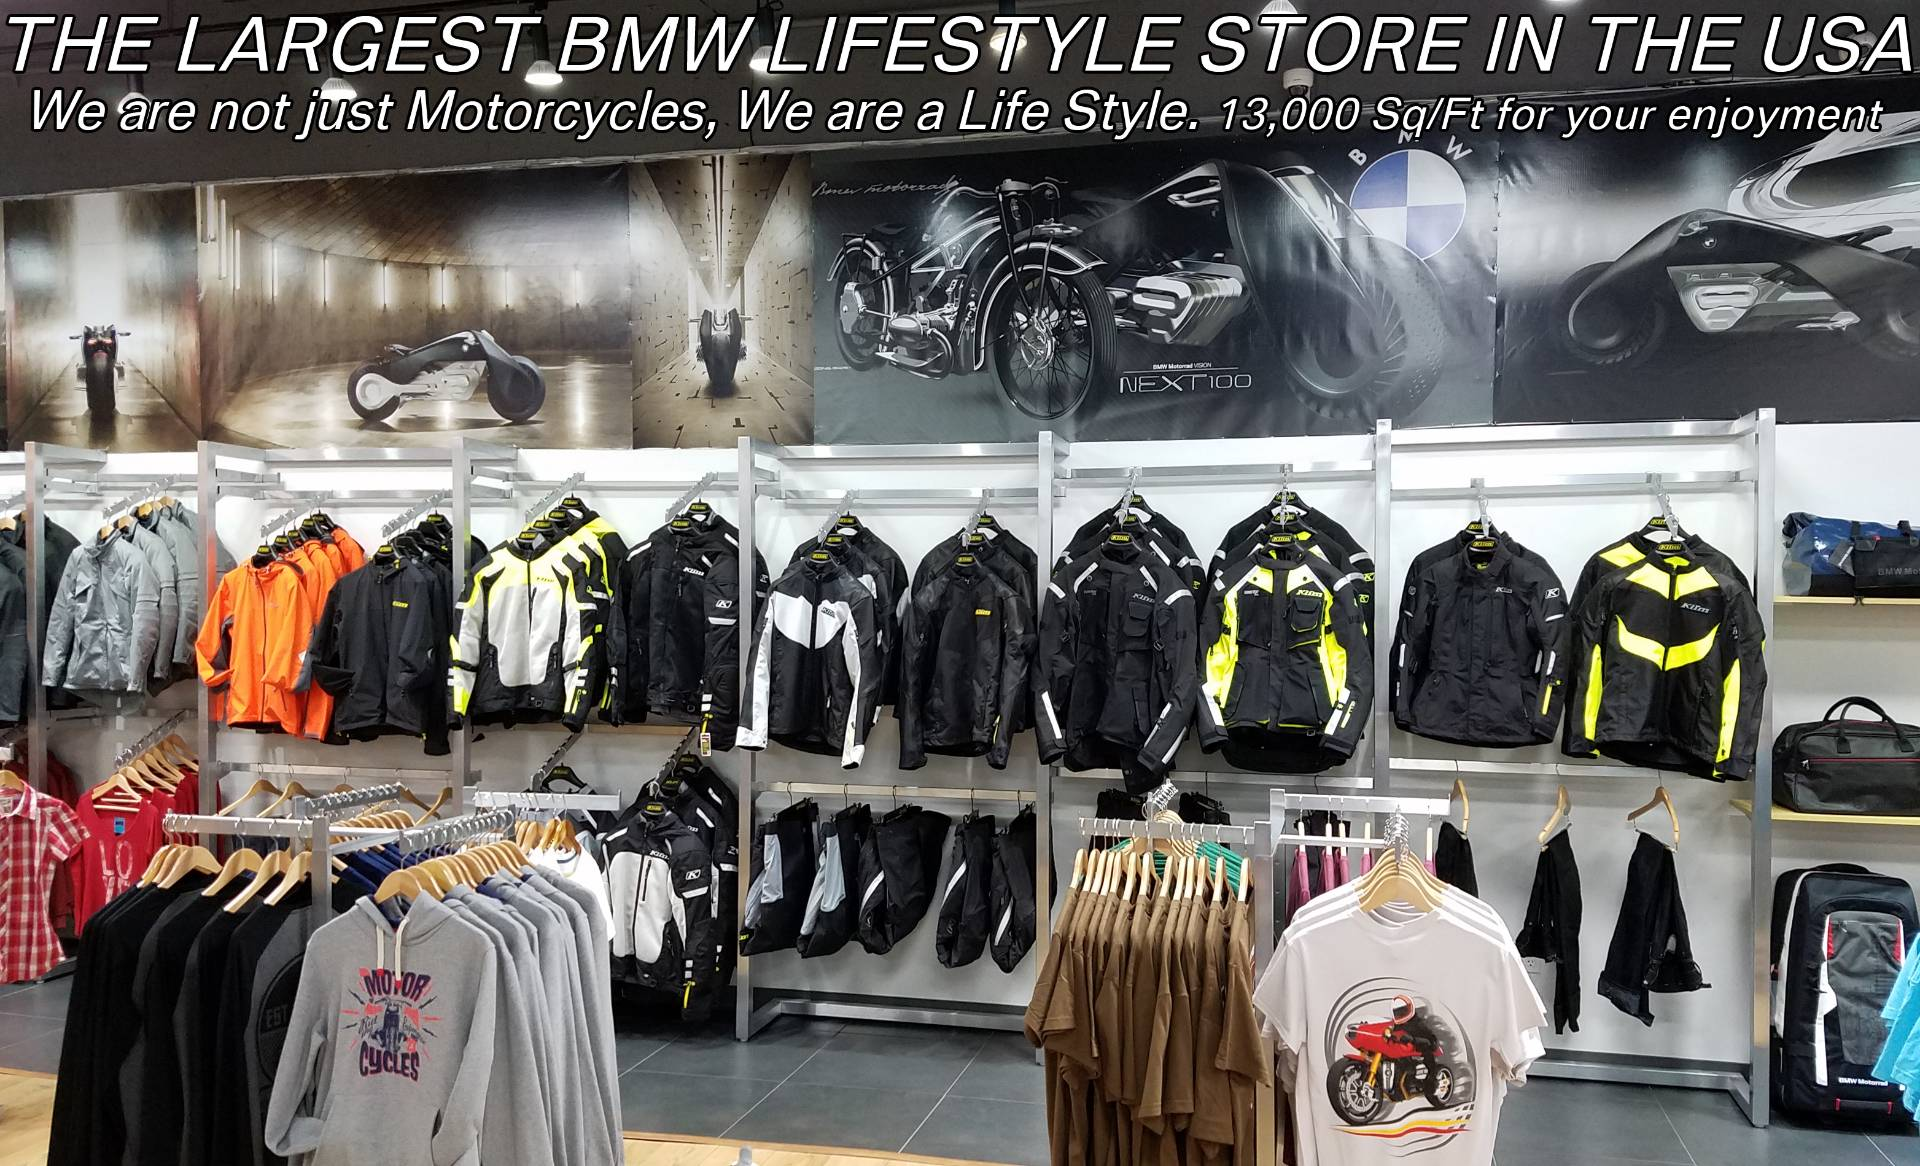 New 2019 BMW G 310 GS for sale, BMW G 310GS for sale, BMW Motorcycle GS, new BMW GS, Spirit of GS, BMW Motorcycles of Miami, Motorcycles of Miami, Motorcycles Miami, New Motorcycles, Used Motorcycles, pre-owned. #BMWMotorcyclesOfMiami #MotorcyclesOfMiami. - Photo 37